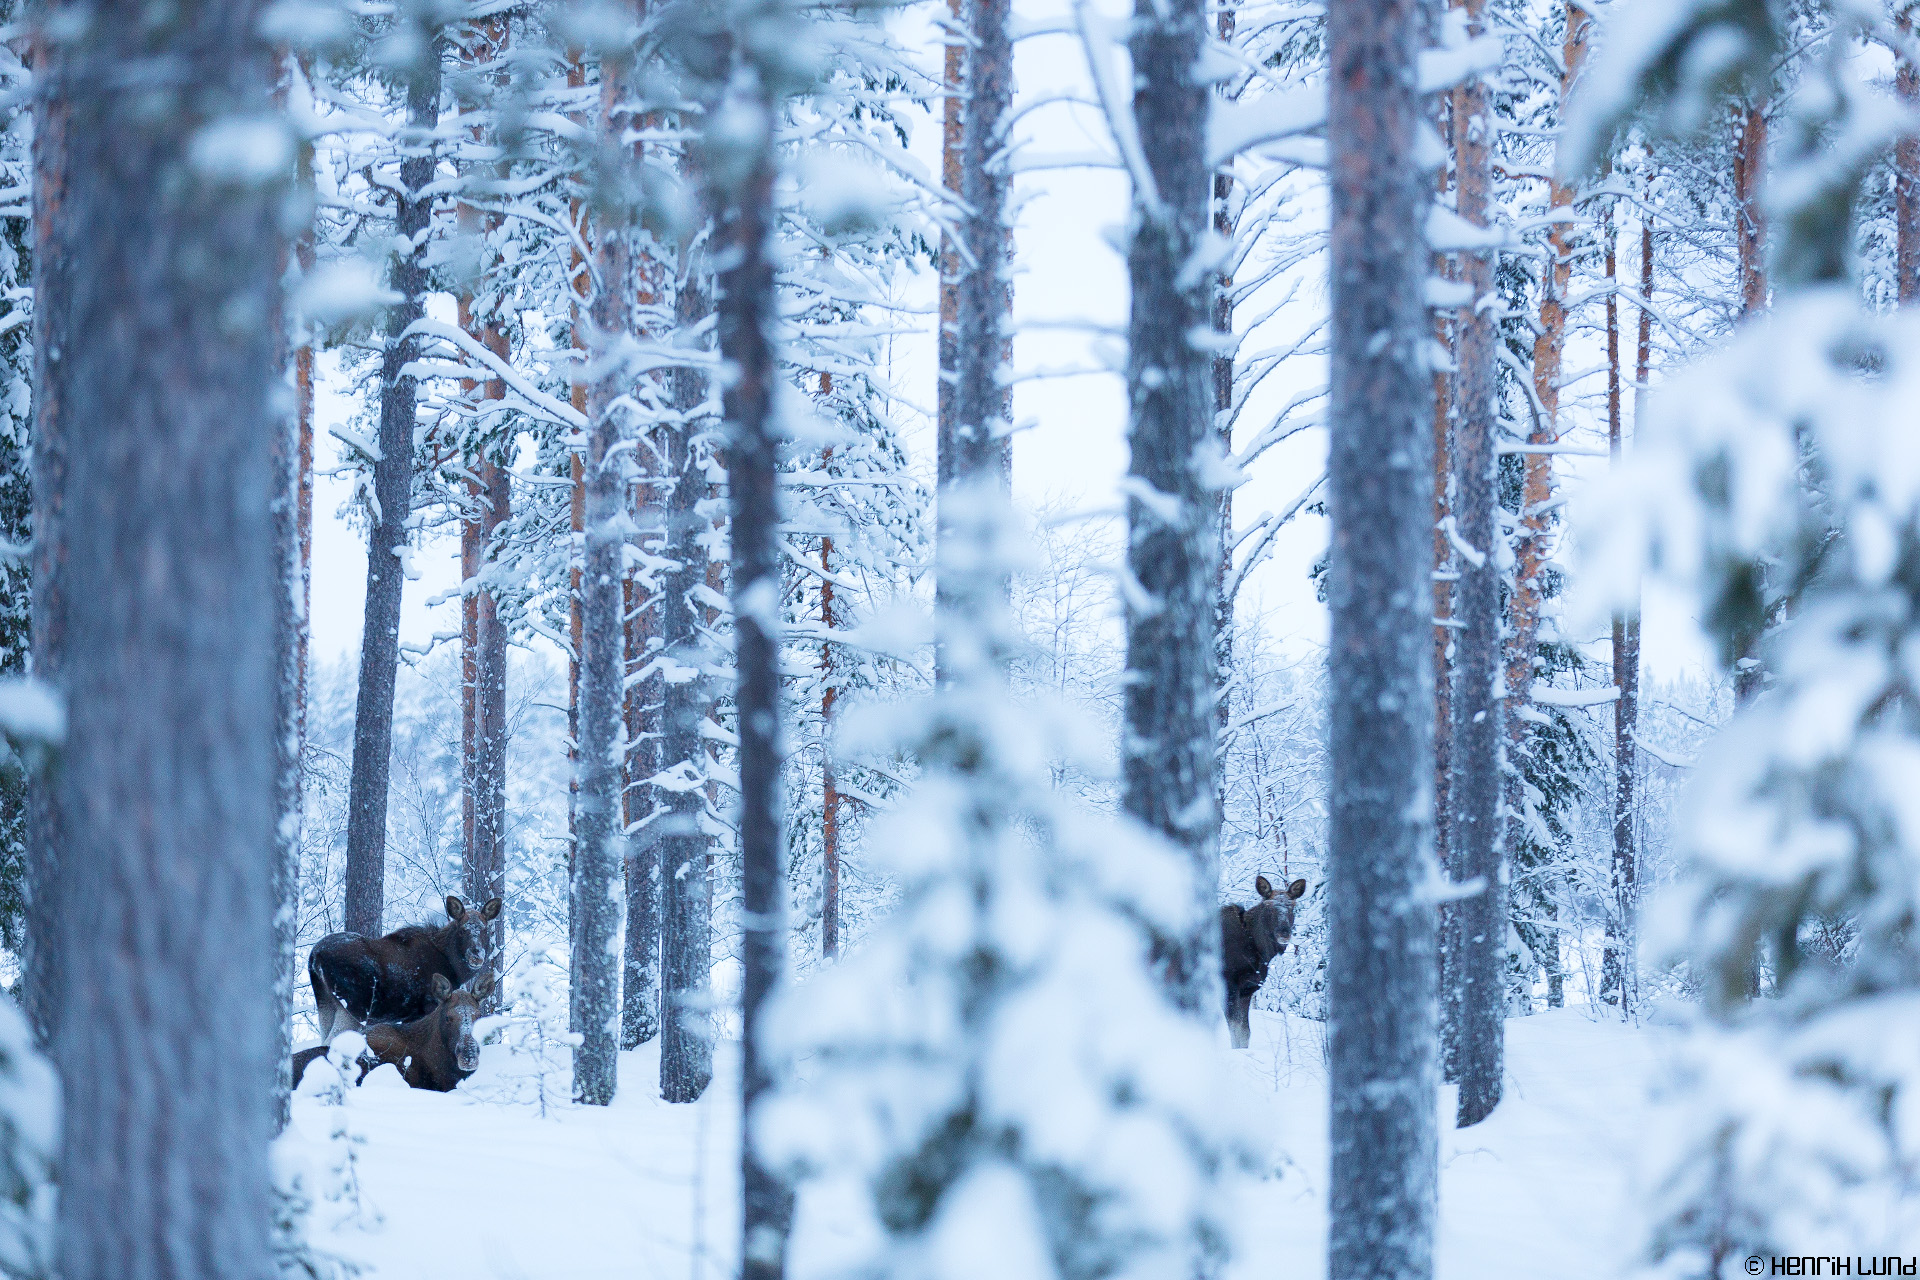 Three mooses in the forest near Pajala airport, Swedish lapland, January 2015.